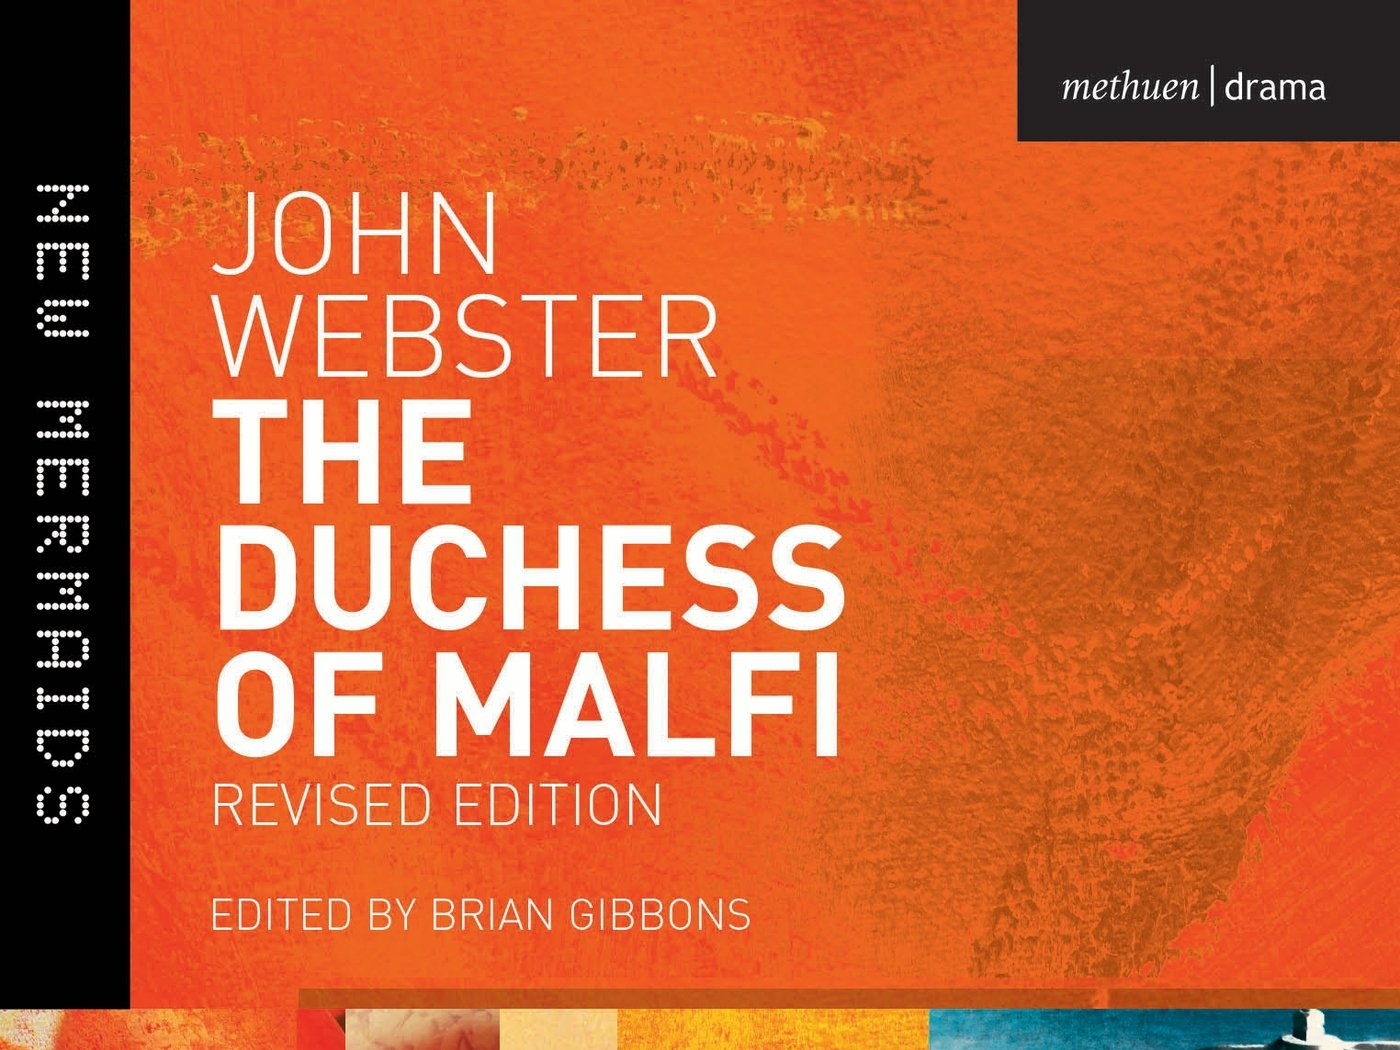 The Duchess of Malfi- Complete Analysis